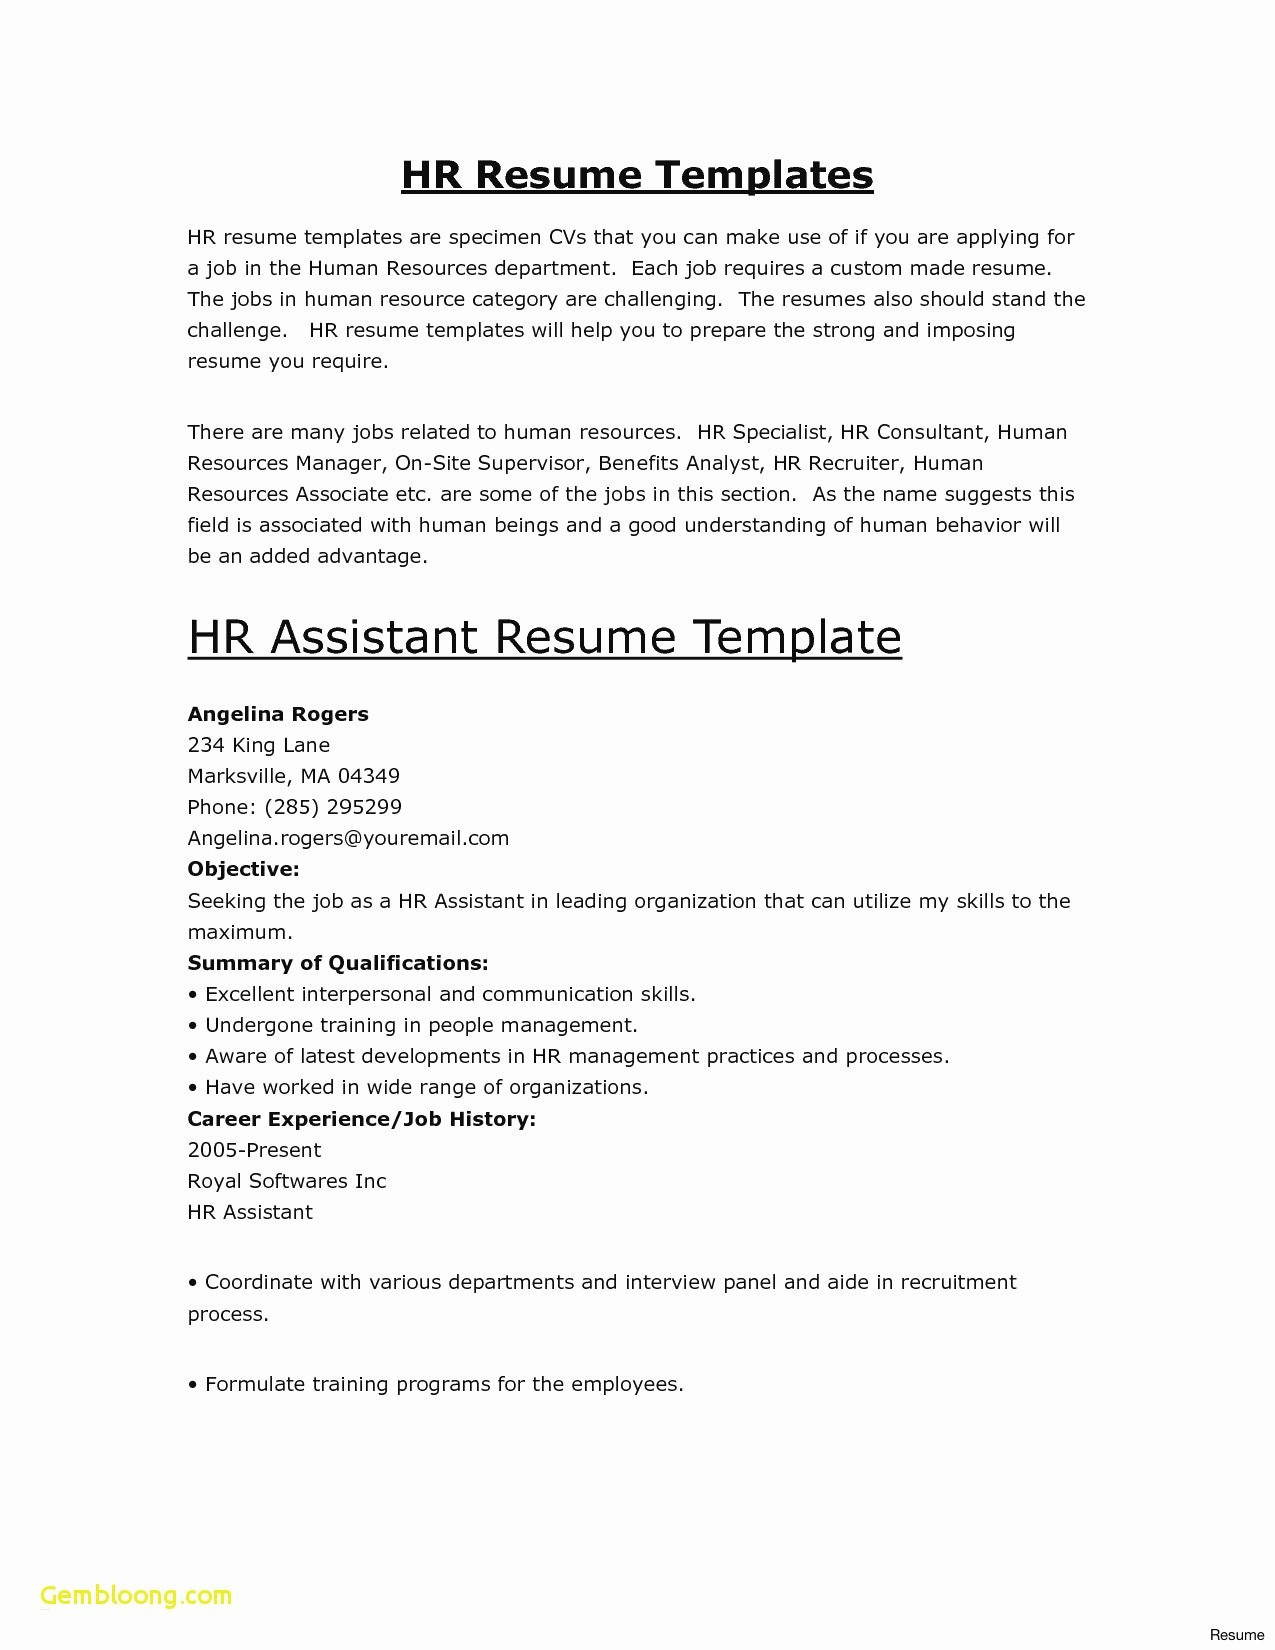 Designer Resume Template - Graphic Design Job Description Resume Fresh Best Resumes Ever